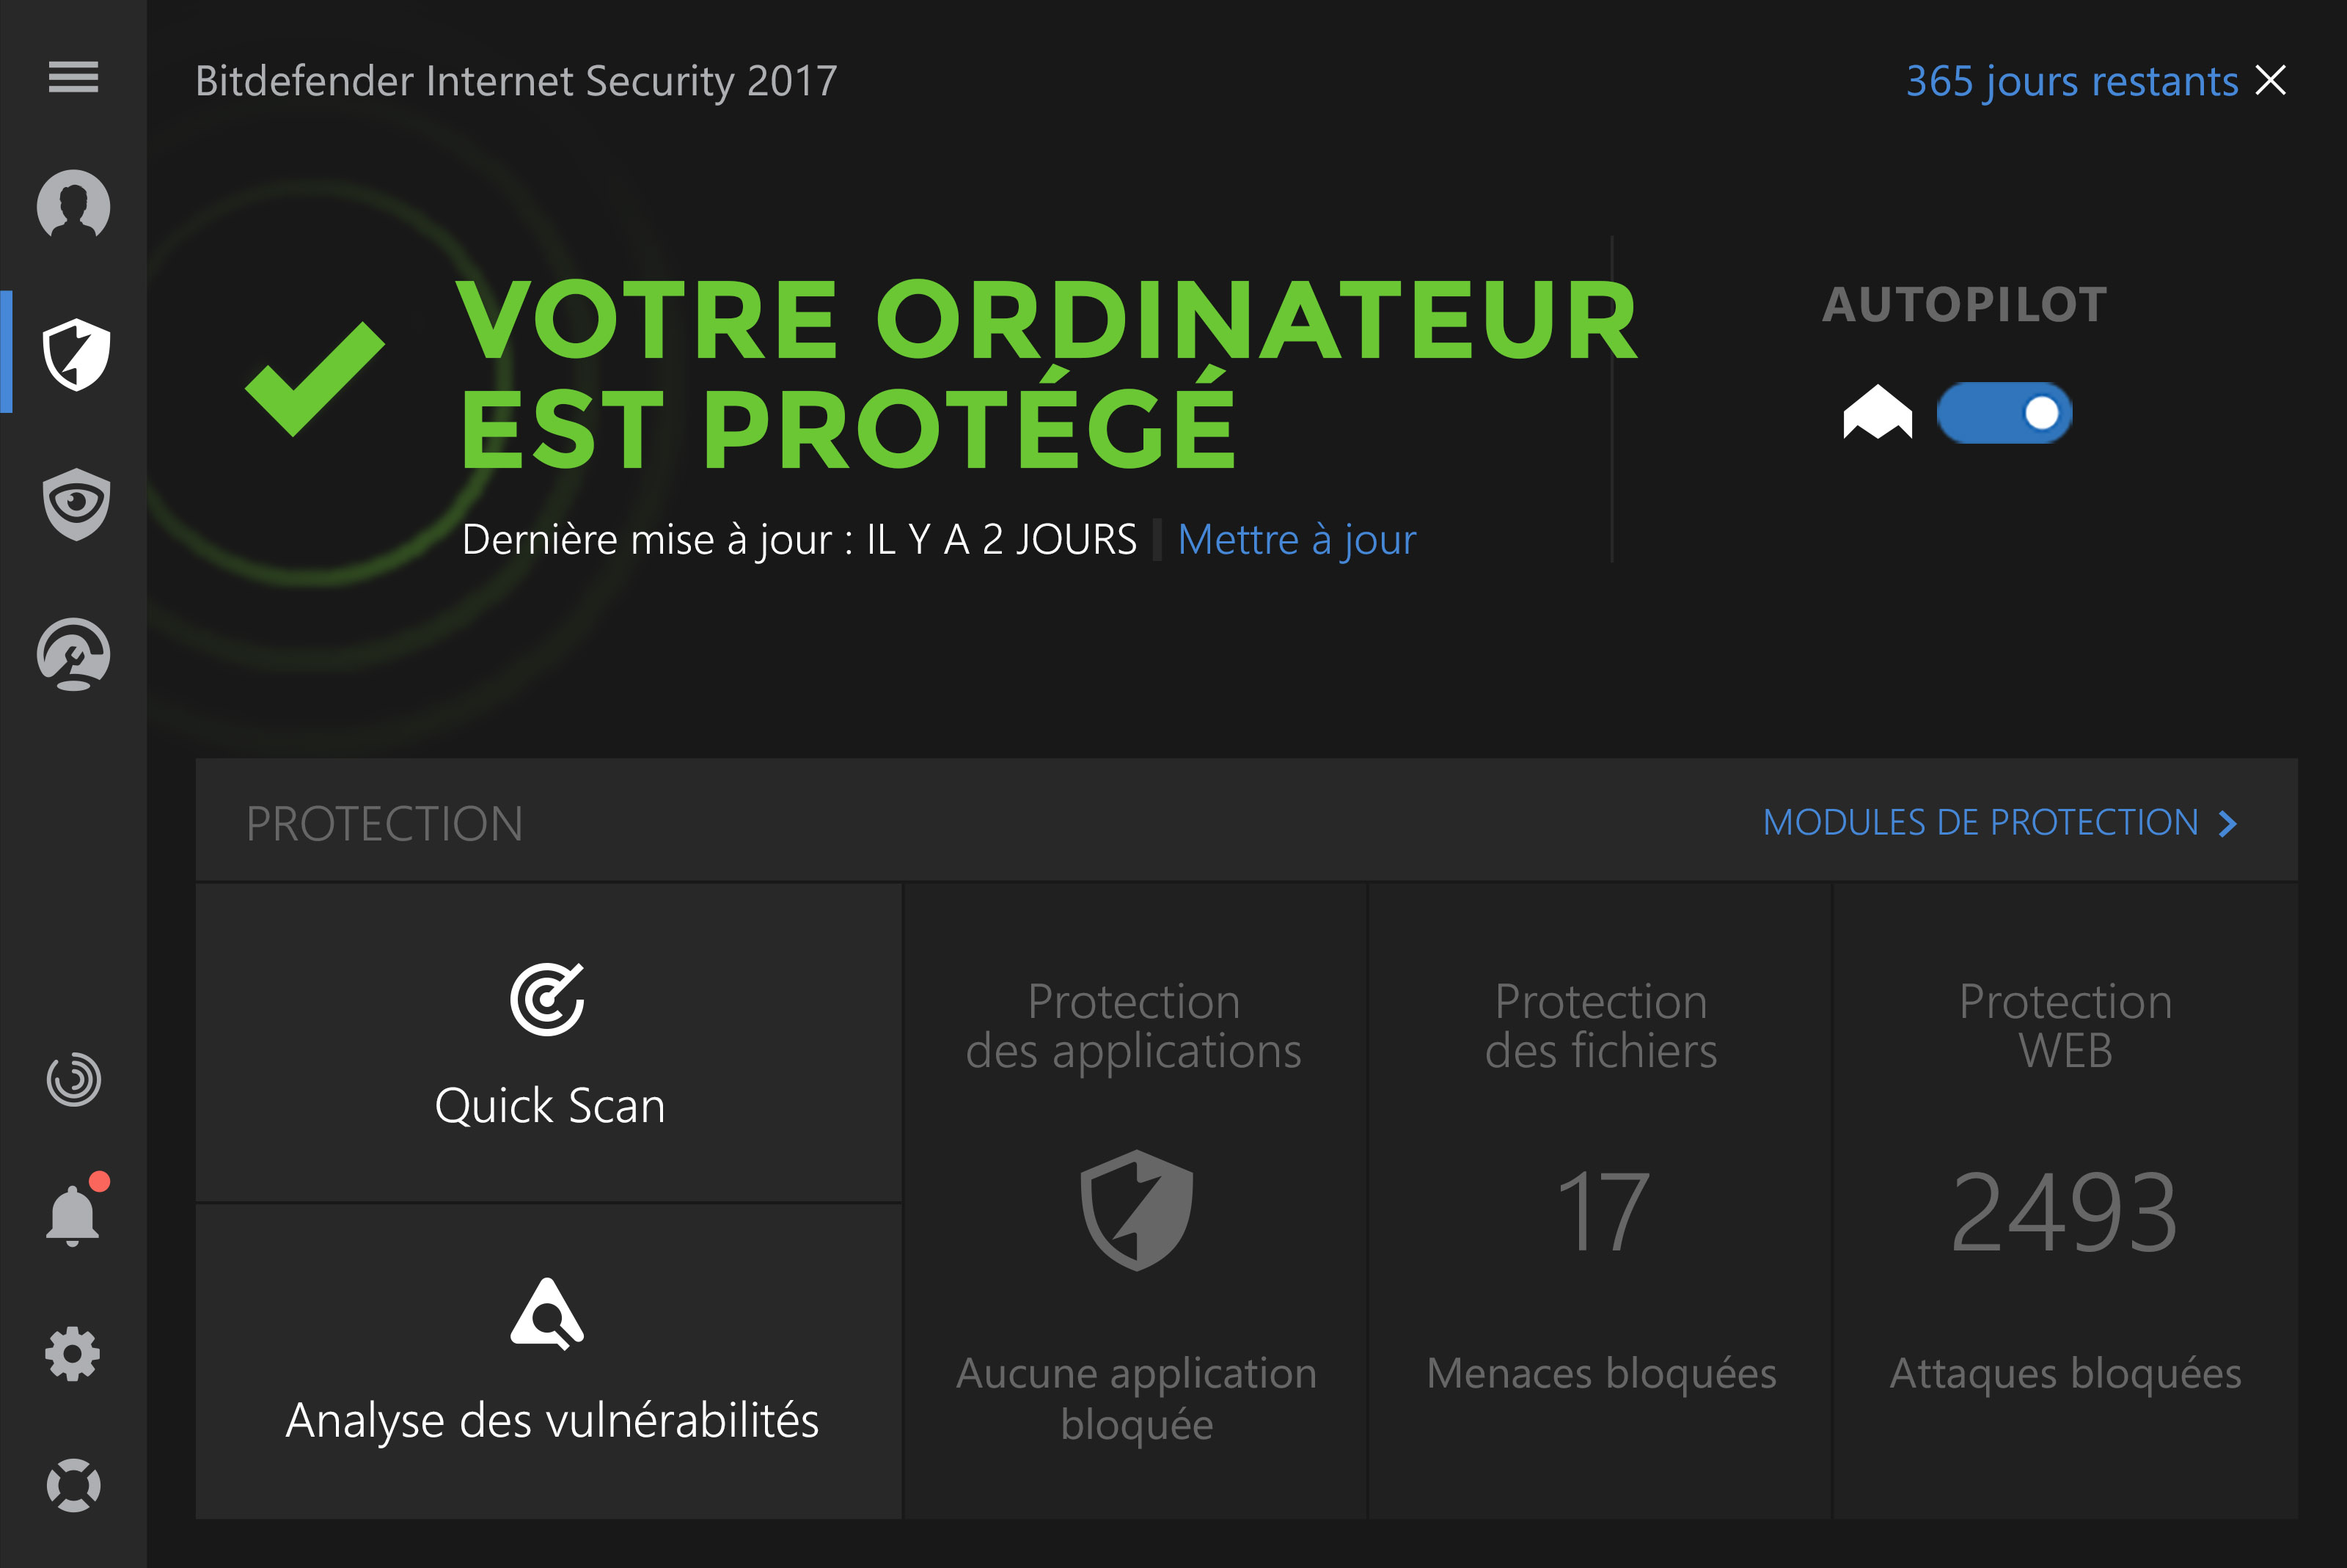 bitdefender_internet_security_2017